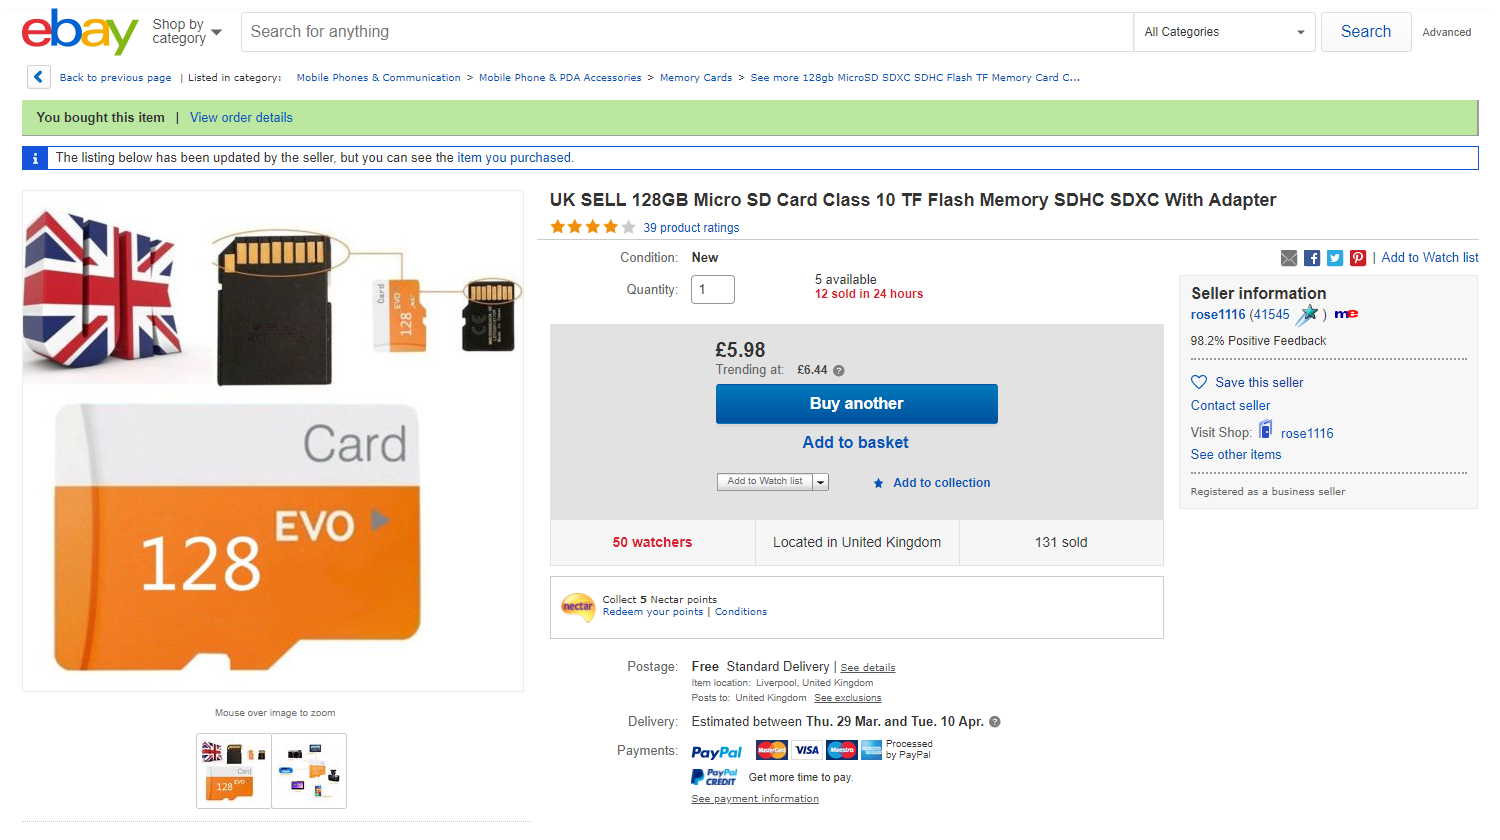 Fake 128GB microSD Card eBay Advert